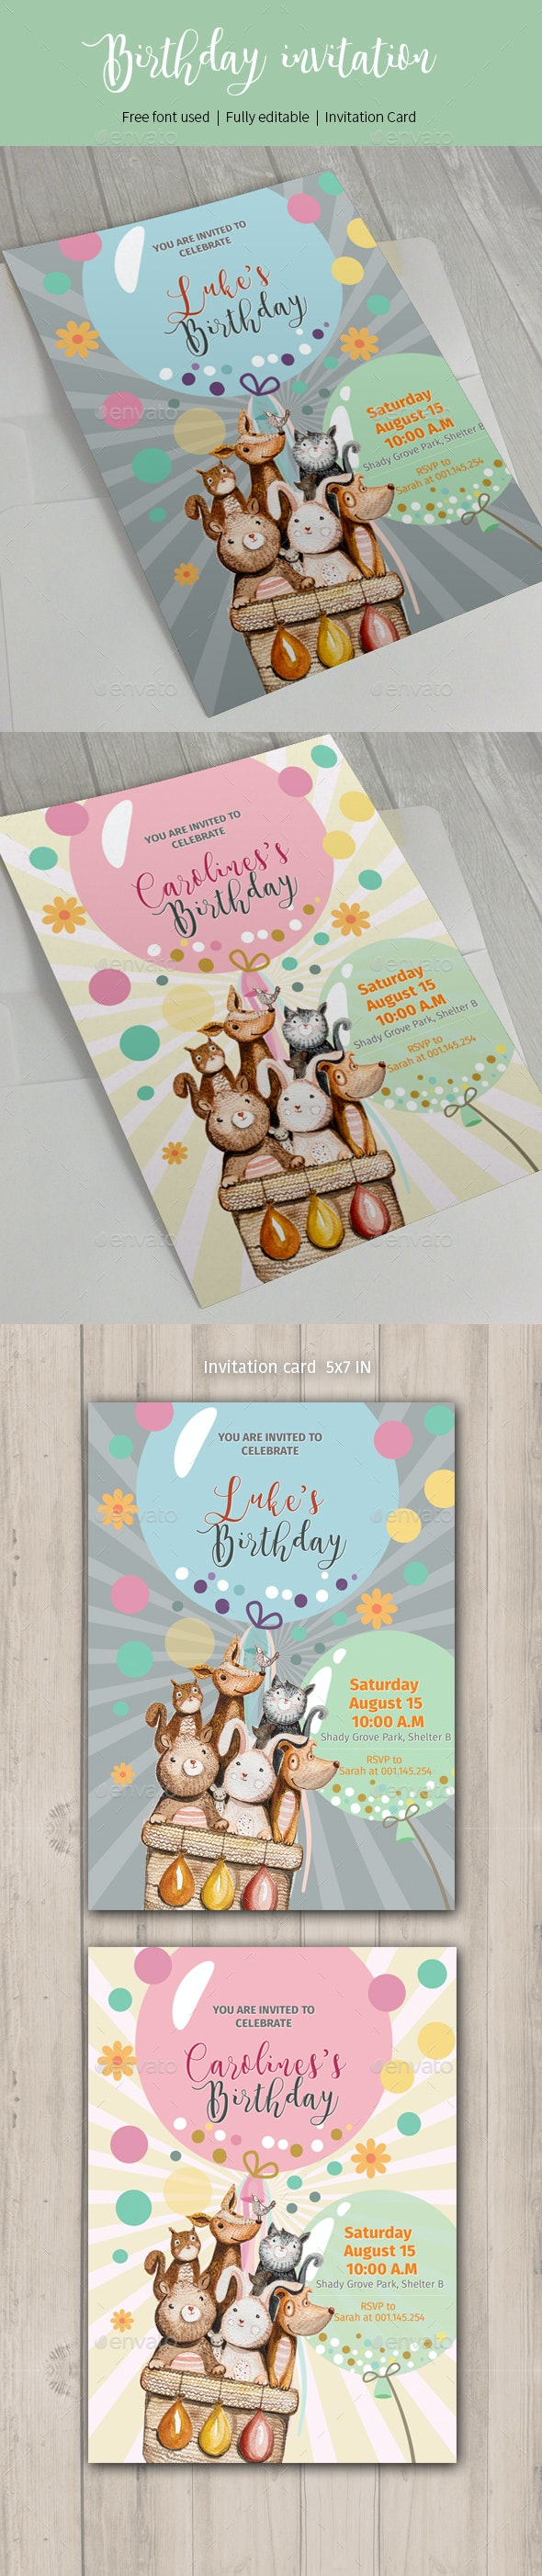 Birthday Invitation Card - Invitations Cards & Invites